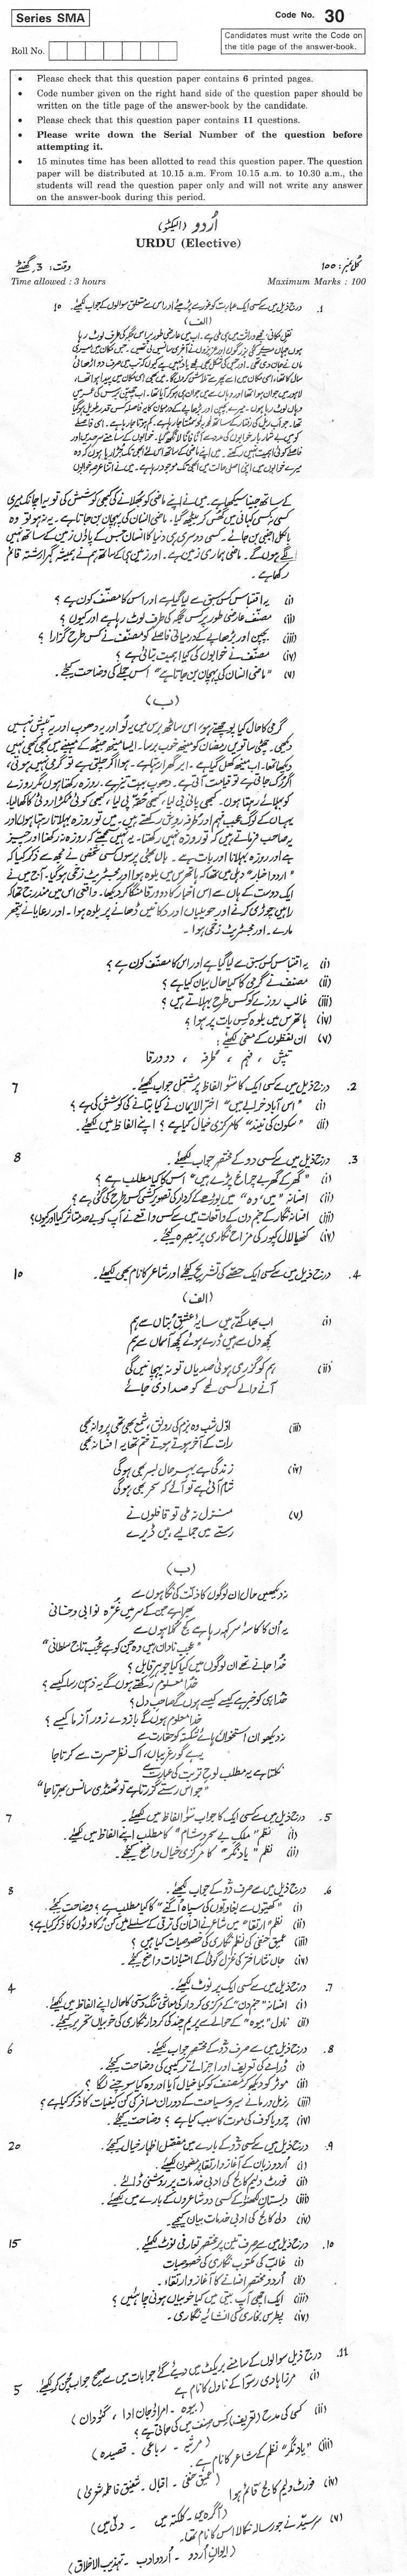 CBSE Class XII Previous Year Question Paper 2012 Urdu (Elective)